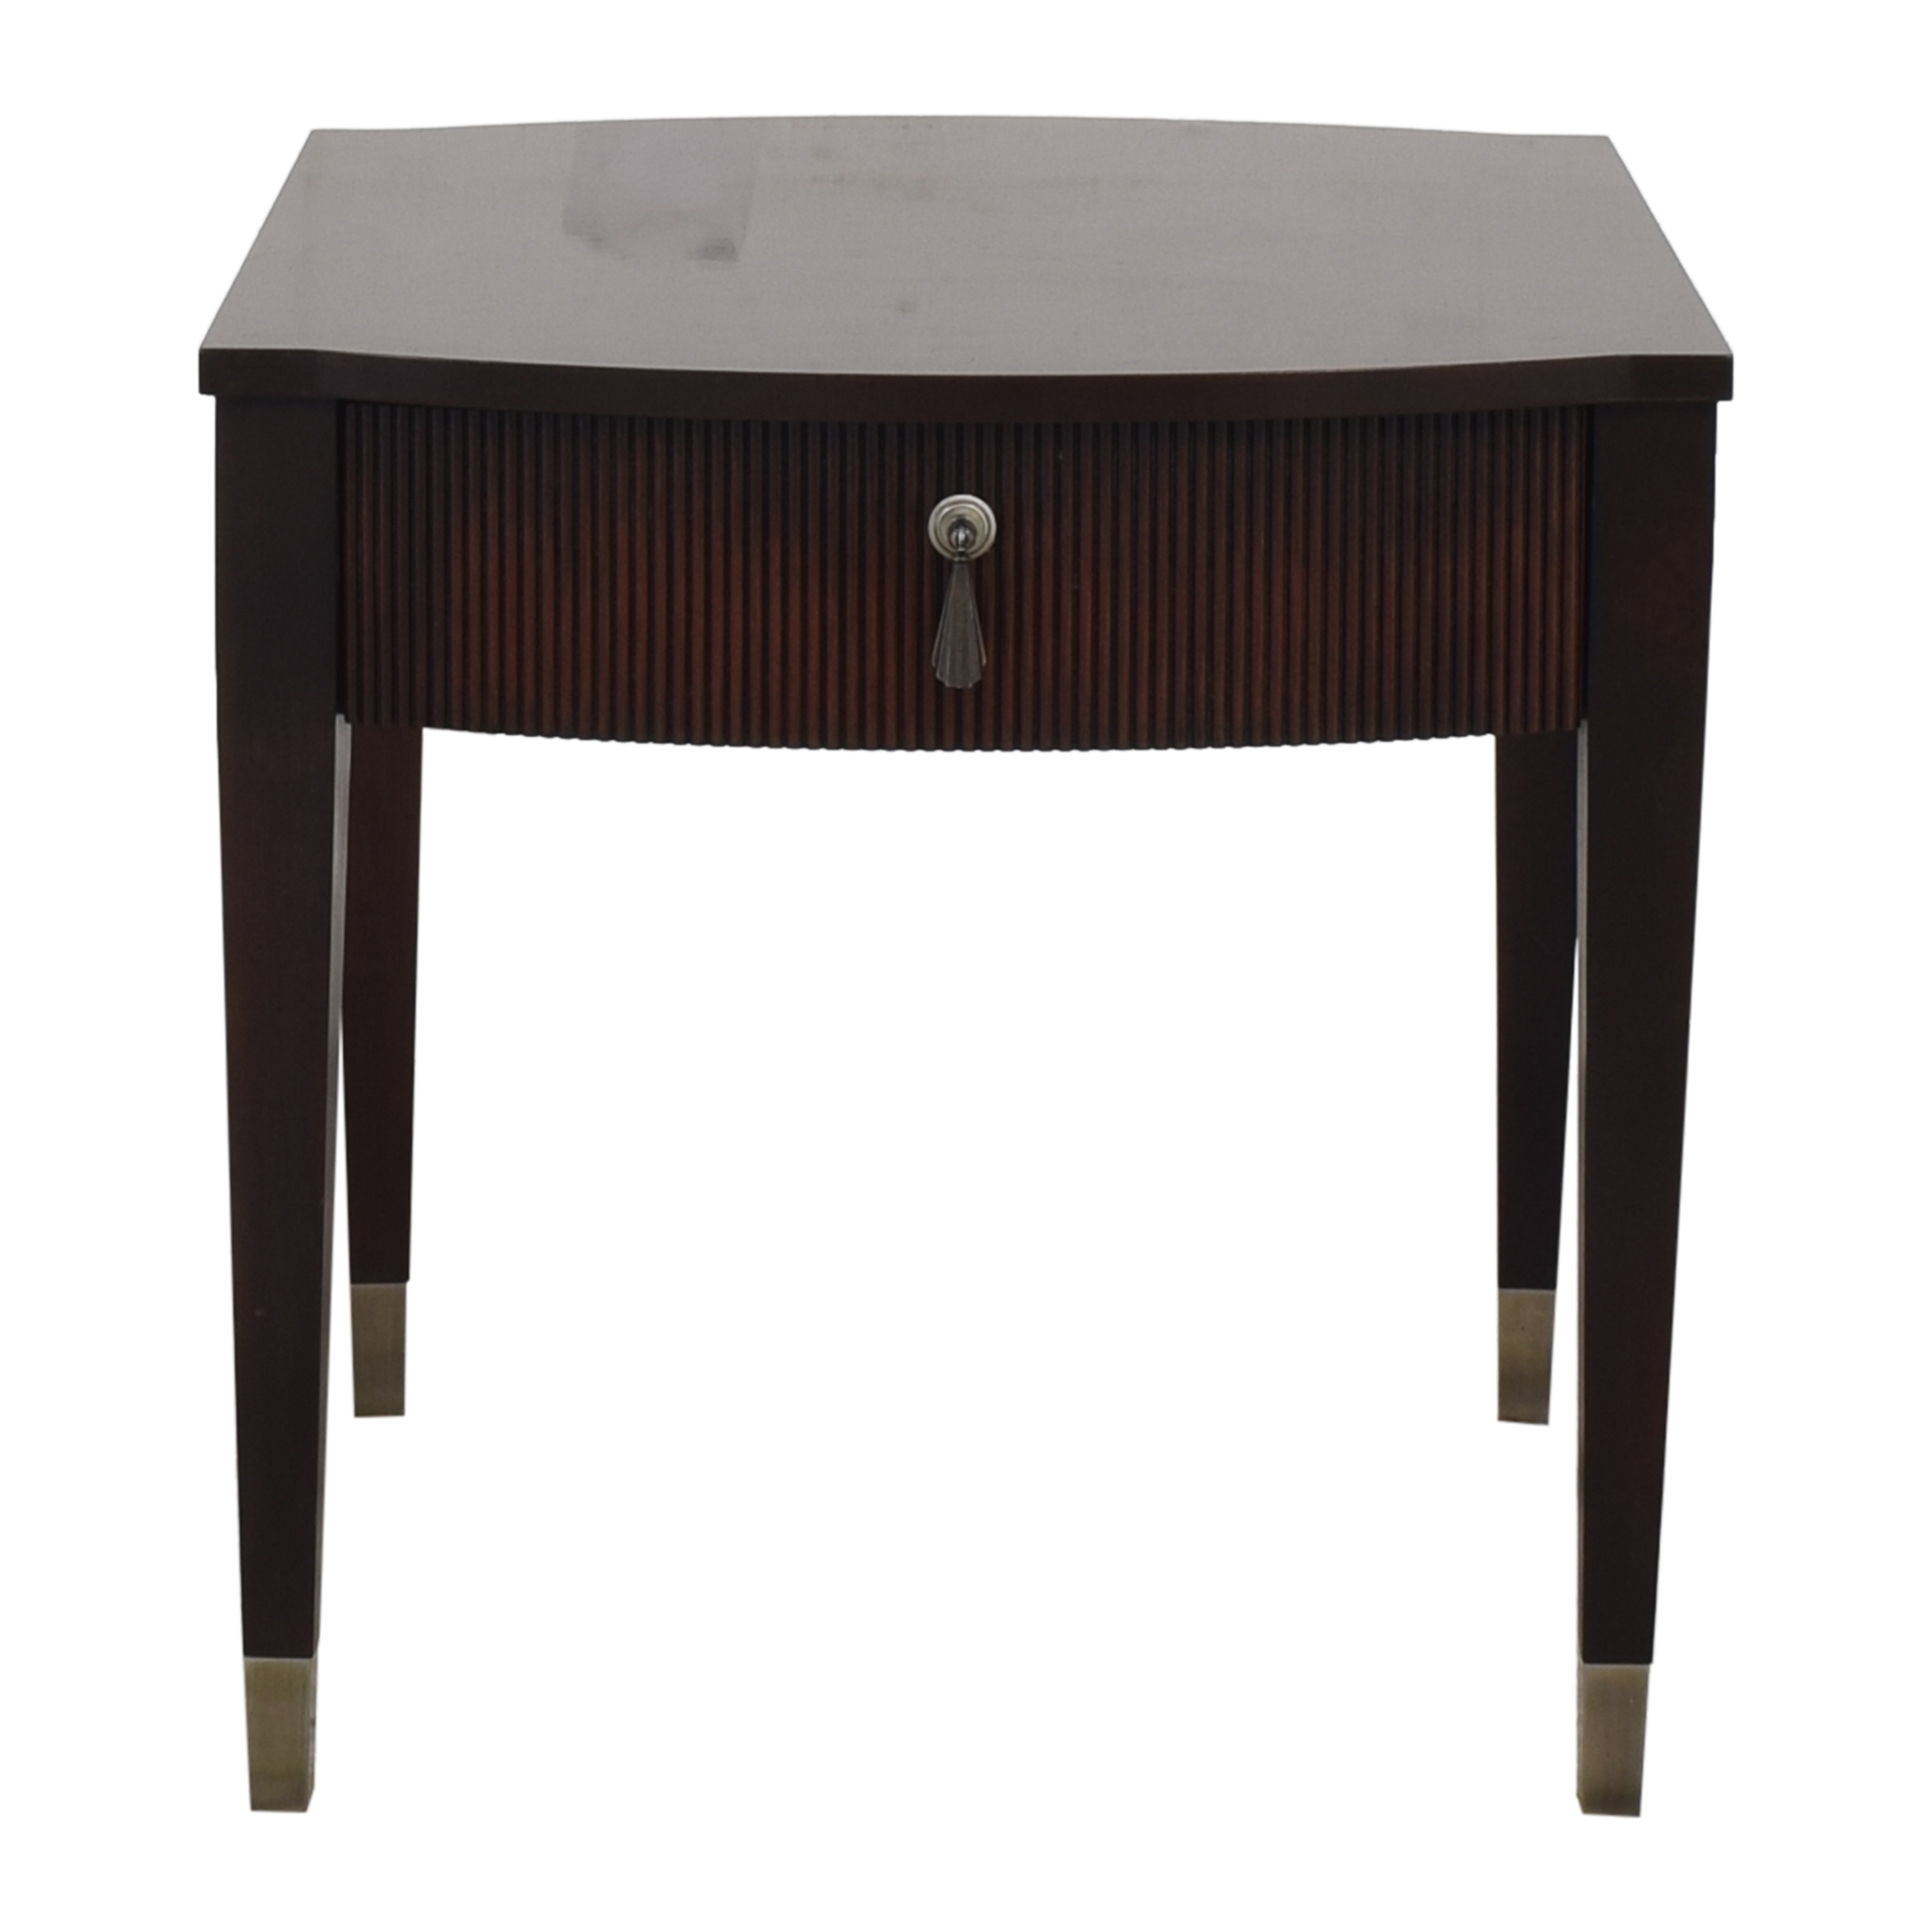 Ethan Allen Avenue End Table / End Tables